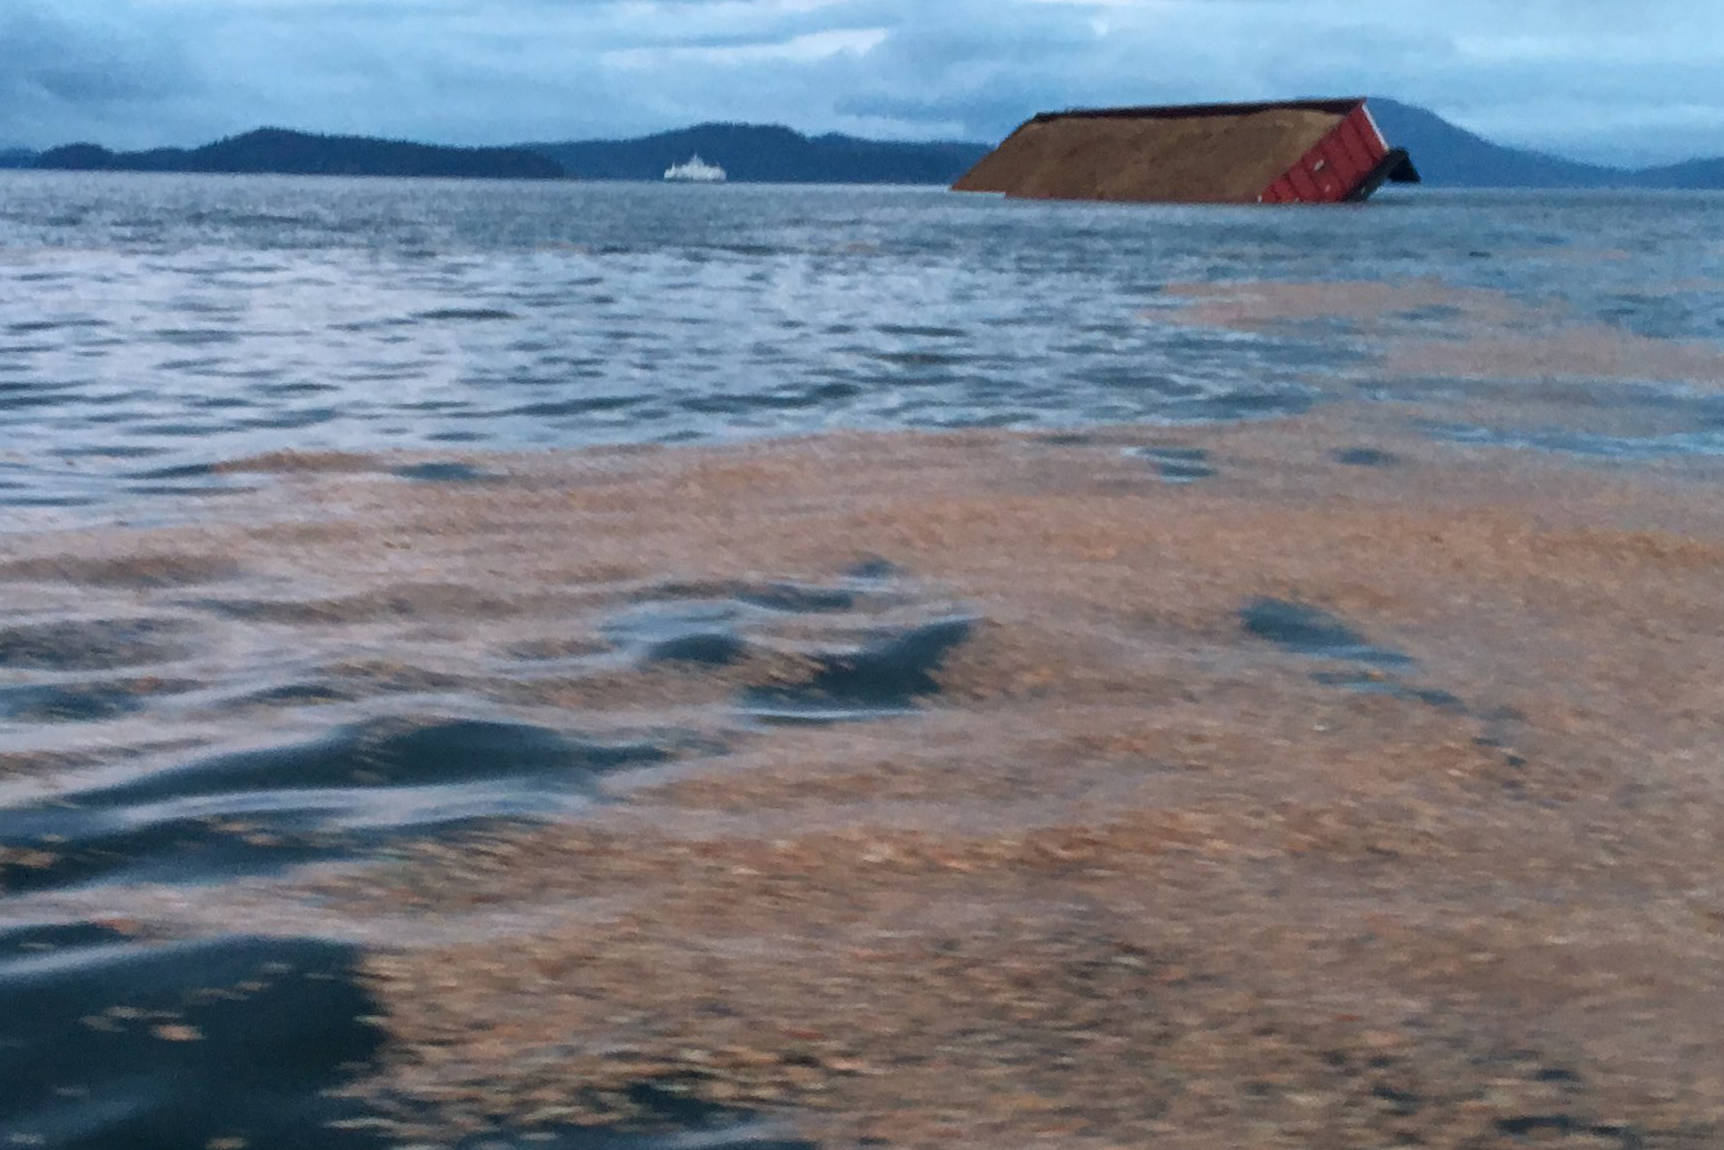 Wood chips float in the Salish Sea between Pender and Saltspring Islands on Wednesday morning. (Ian Hinkle Twitter)                                Wood chips float in the Salish Sea between Pender and Saltspring Islands on Wednesday morning. (Ian Hinkle Twitter)